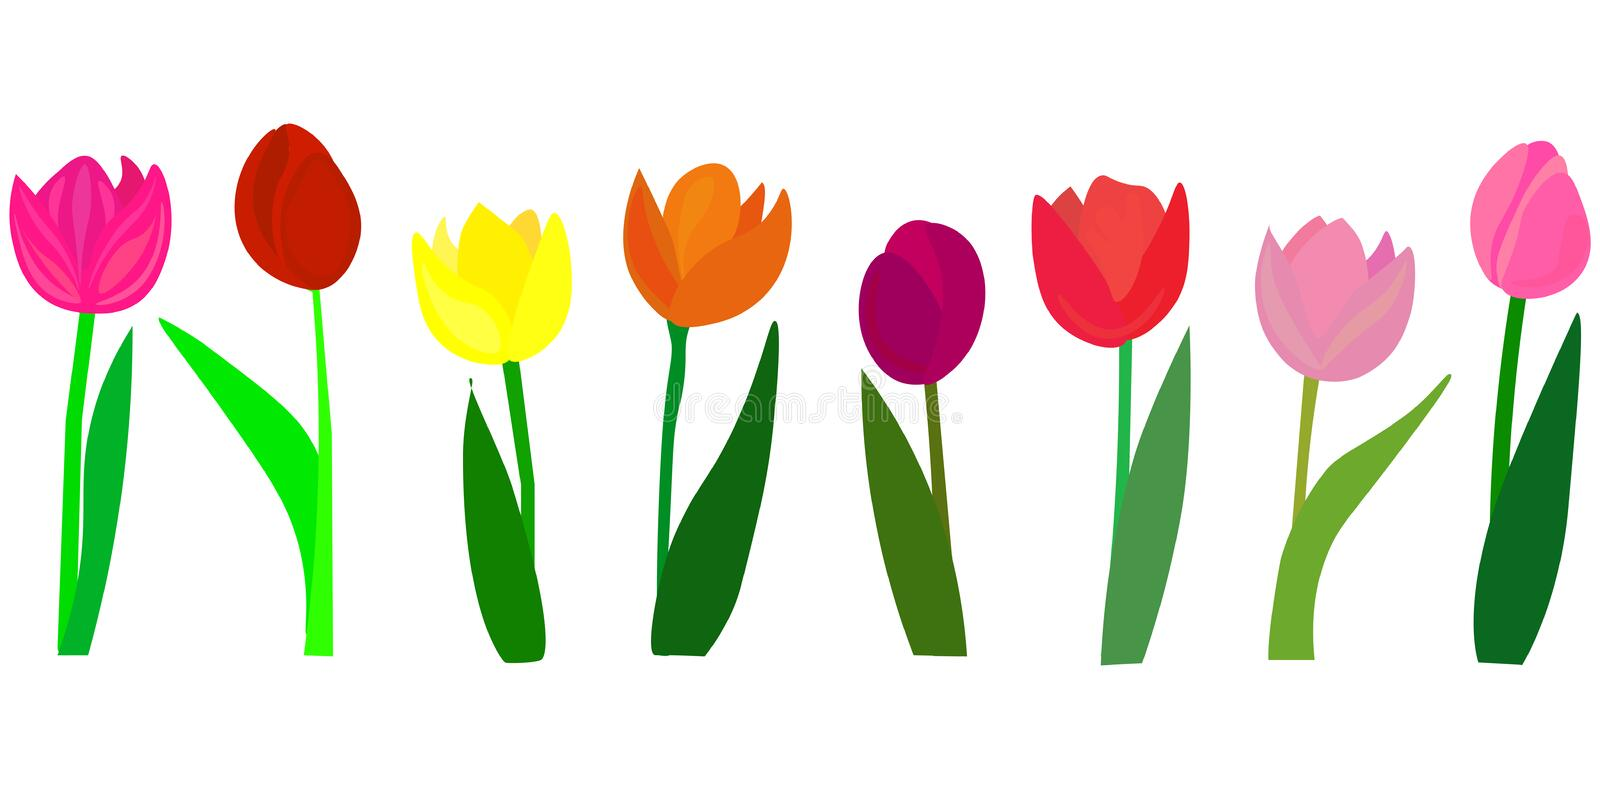 Many beautiful colorful Tulips with leaves isolated on a transparent background. Photo-realistic mesh vector illustration for any royalty free illustration